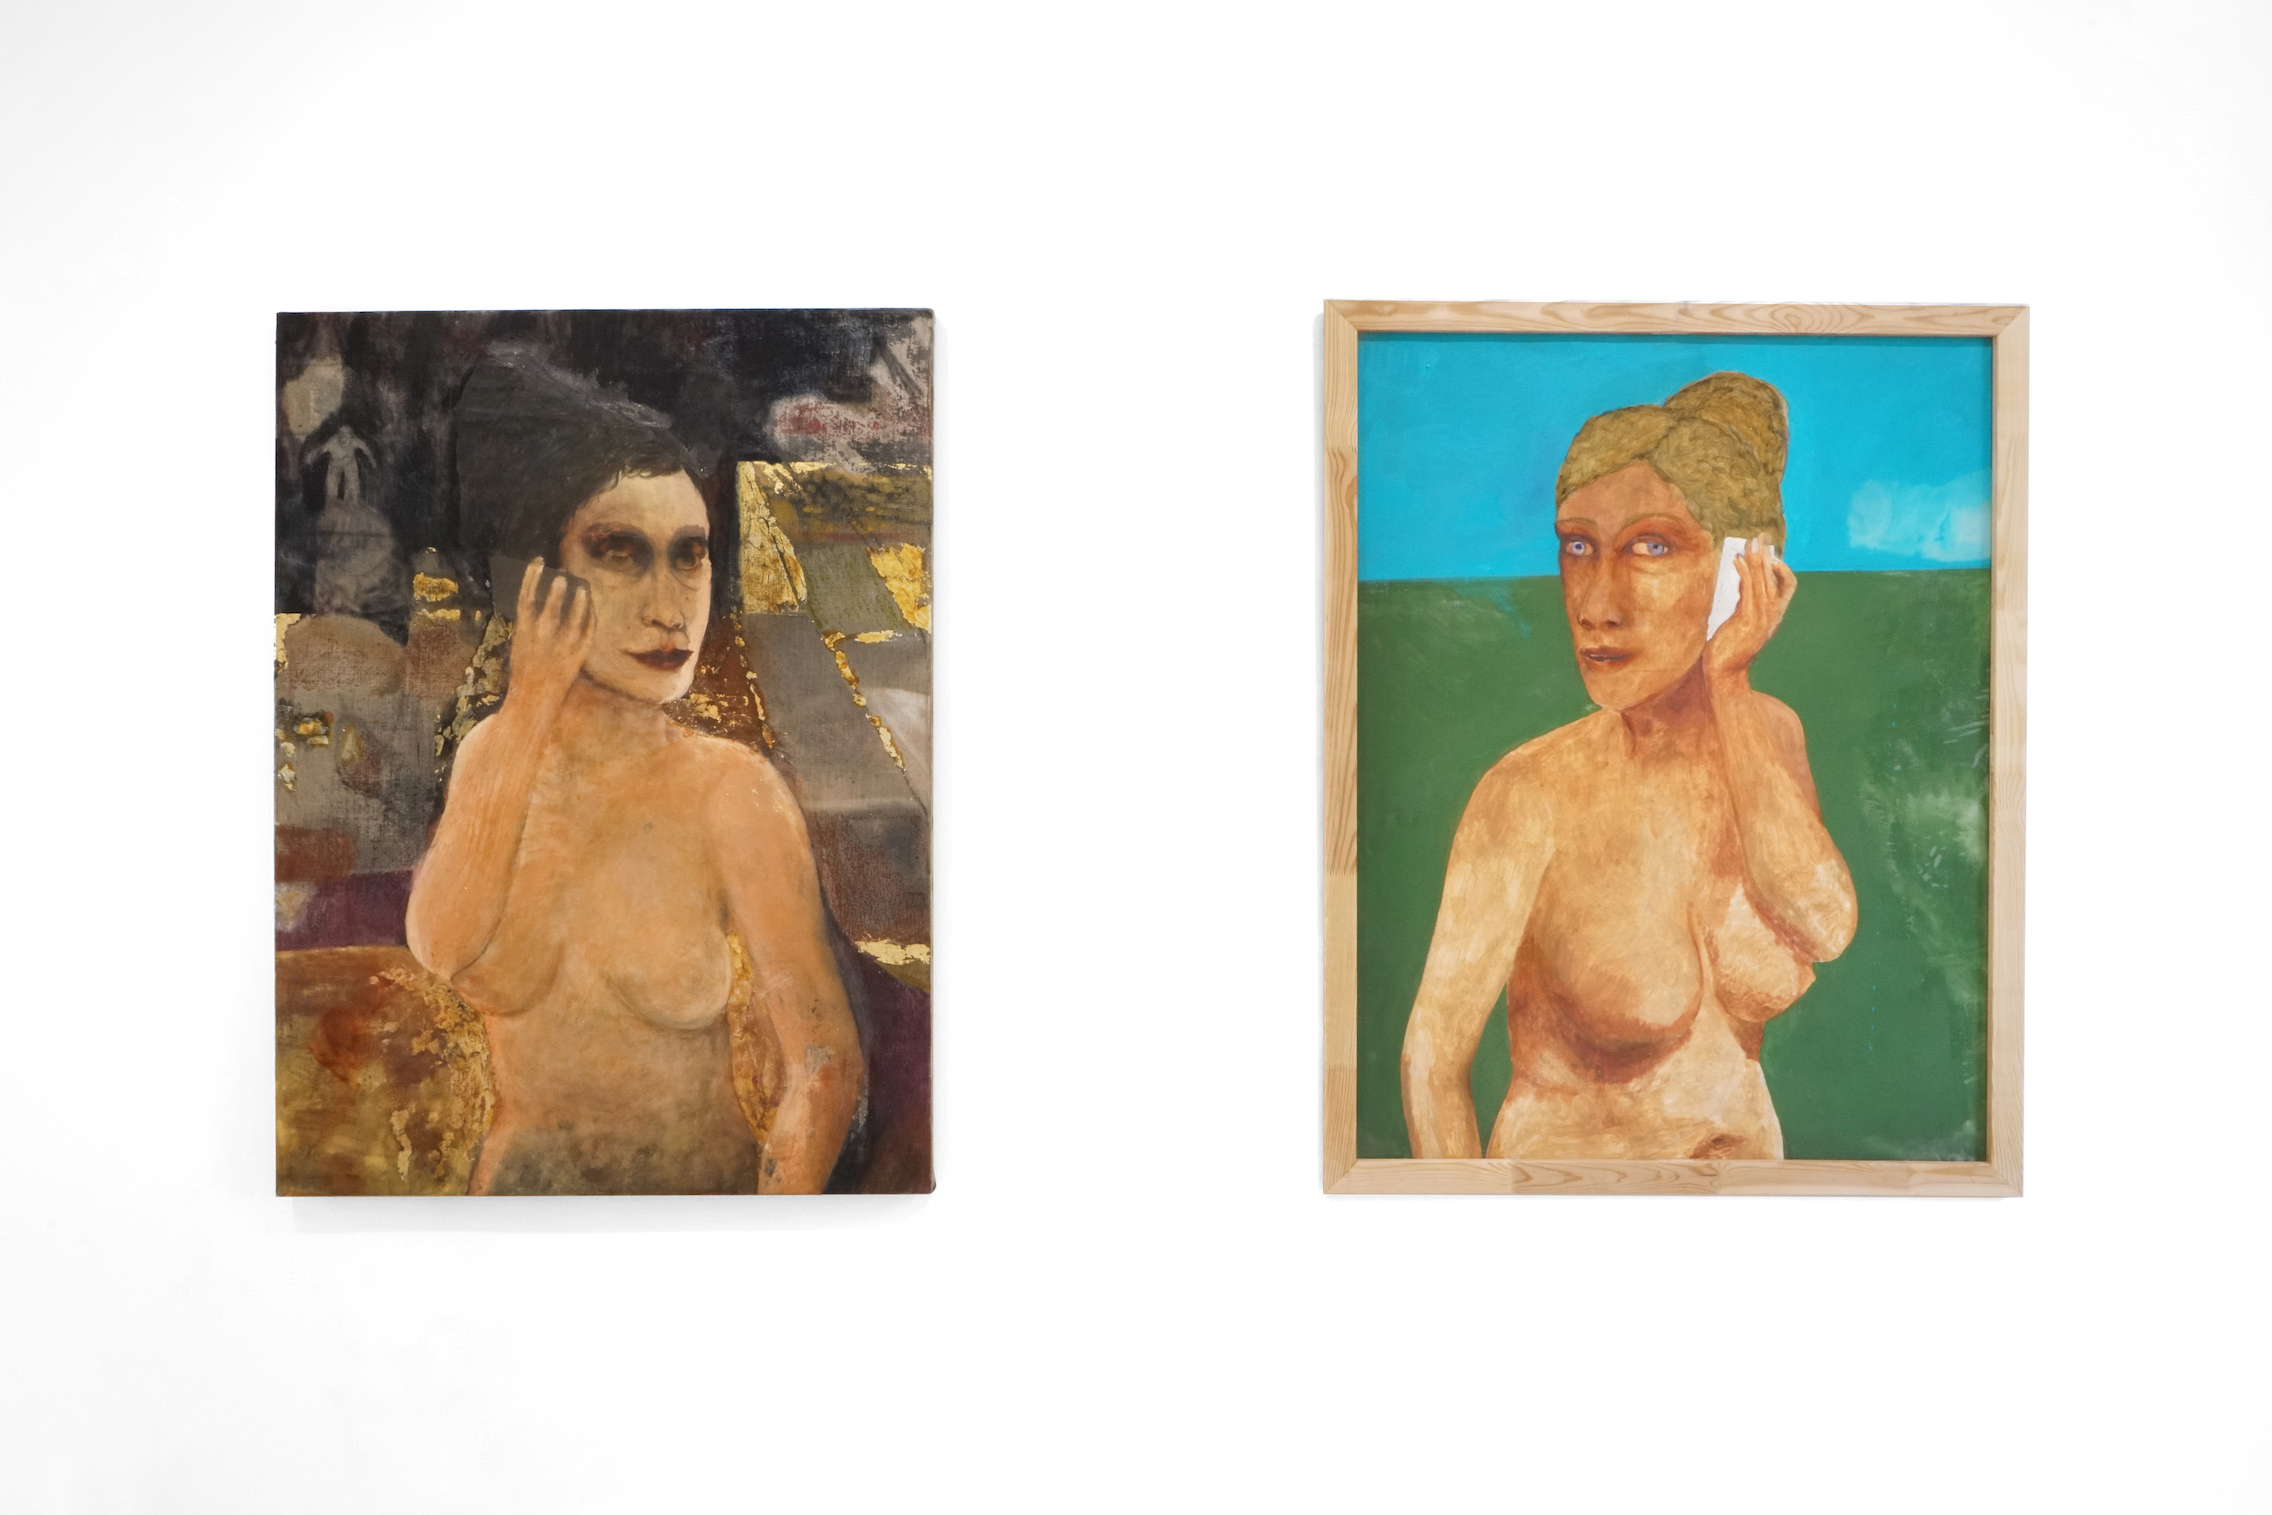 Stanislava Kovalcikova, Cautionary Tales, Left: The call (night) 2020 Oil on linen 123 x 91 cm, Right: The call (day) 2020 Oil on fabric 120 x 95 cm, courtesy of MAMOTH